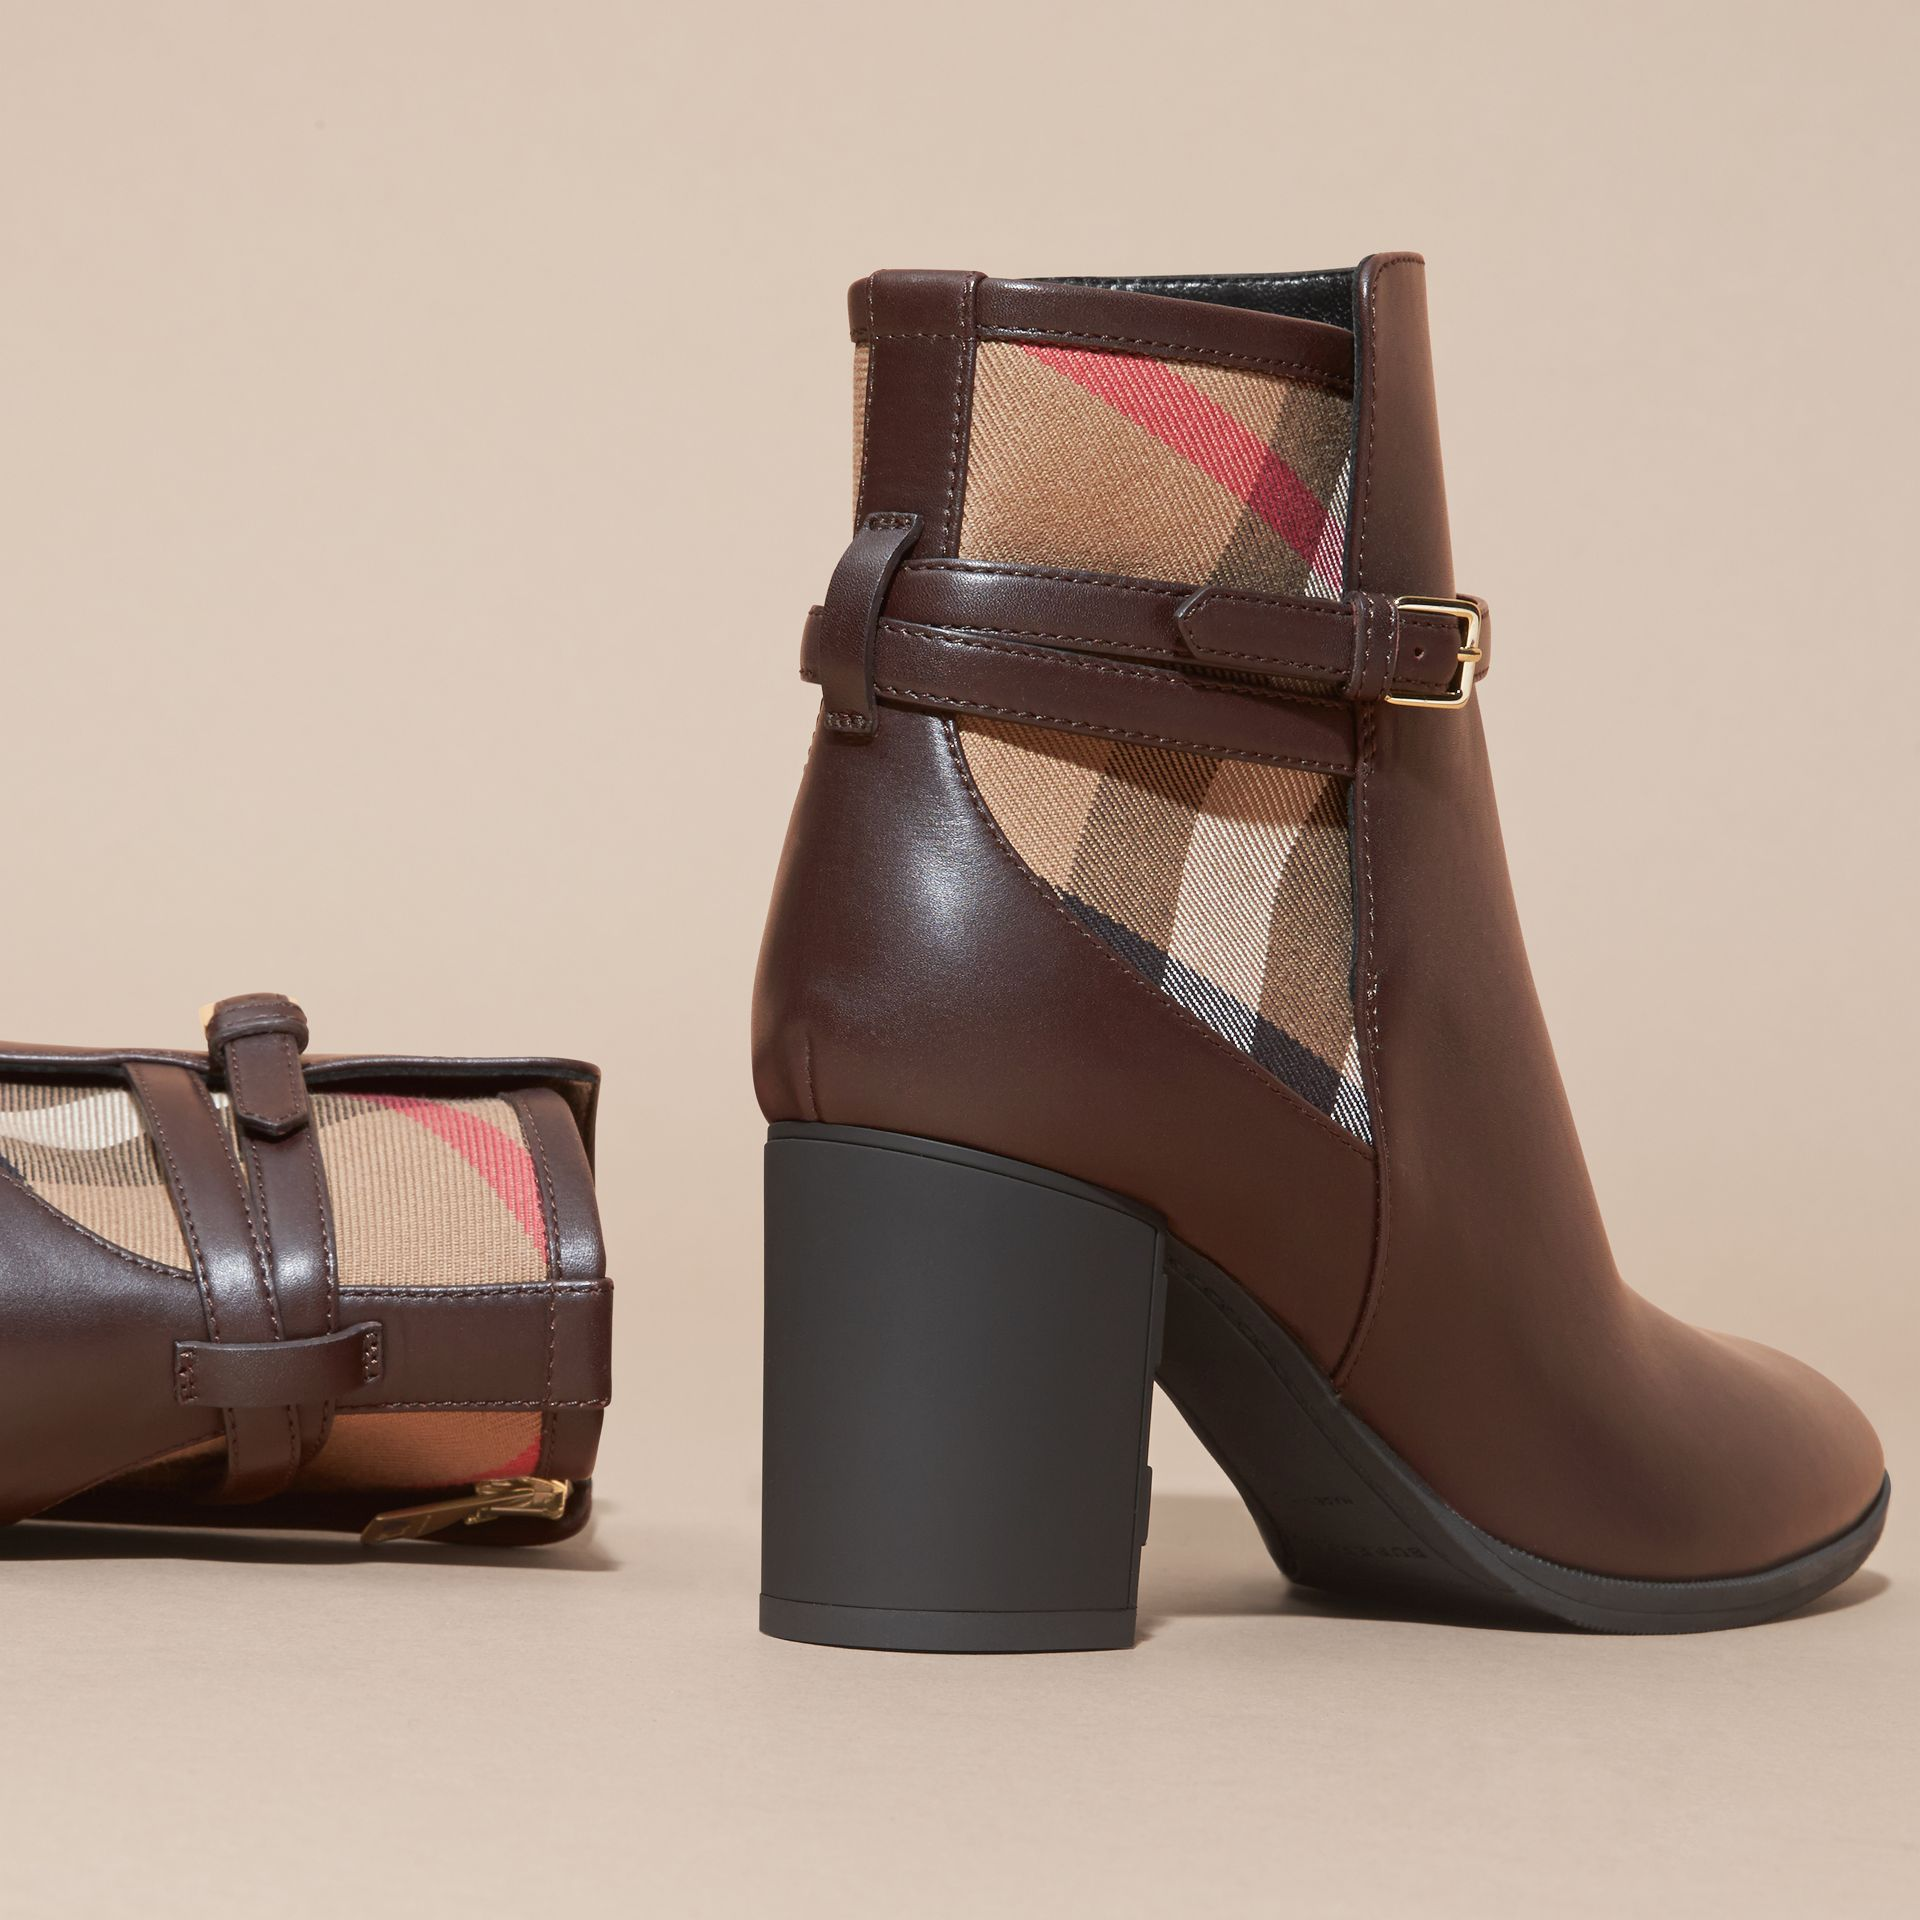 Noisette Bottines en cuir et coton House check Noisette - photo de la galerie 4